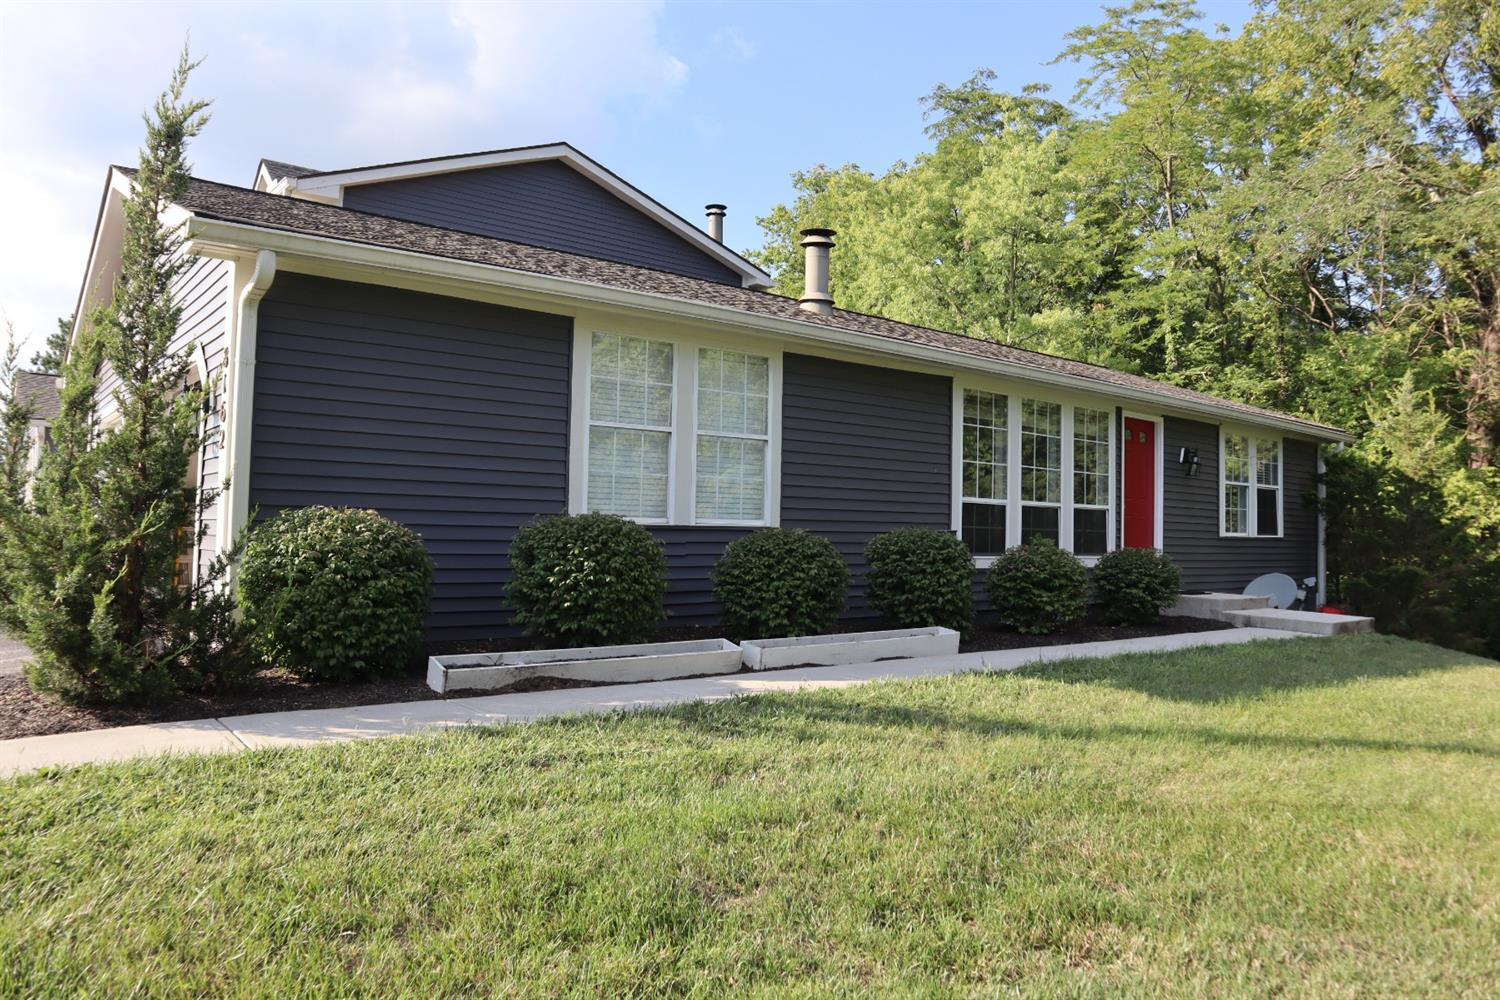 Property for sale at 8162 Clovehitch Ct, Deerfield Twp.,  Ohio 45039